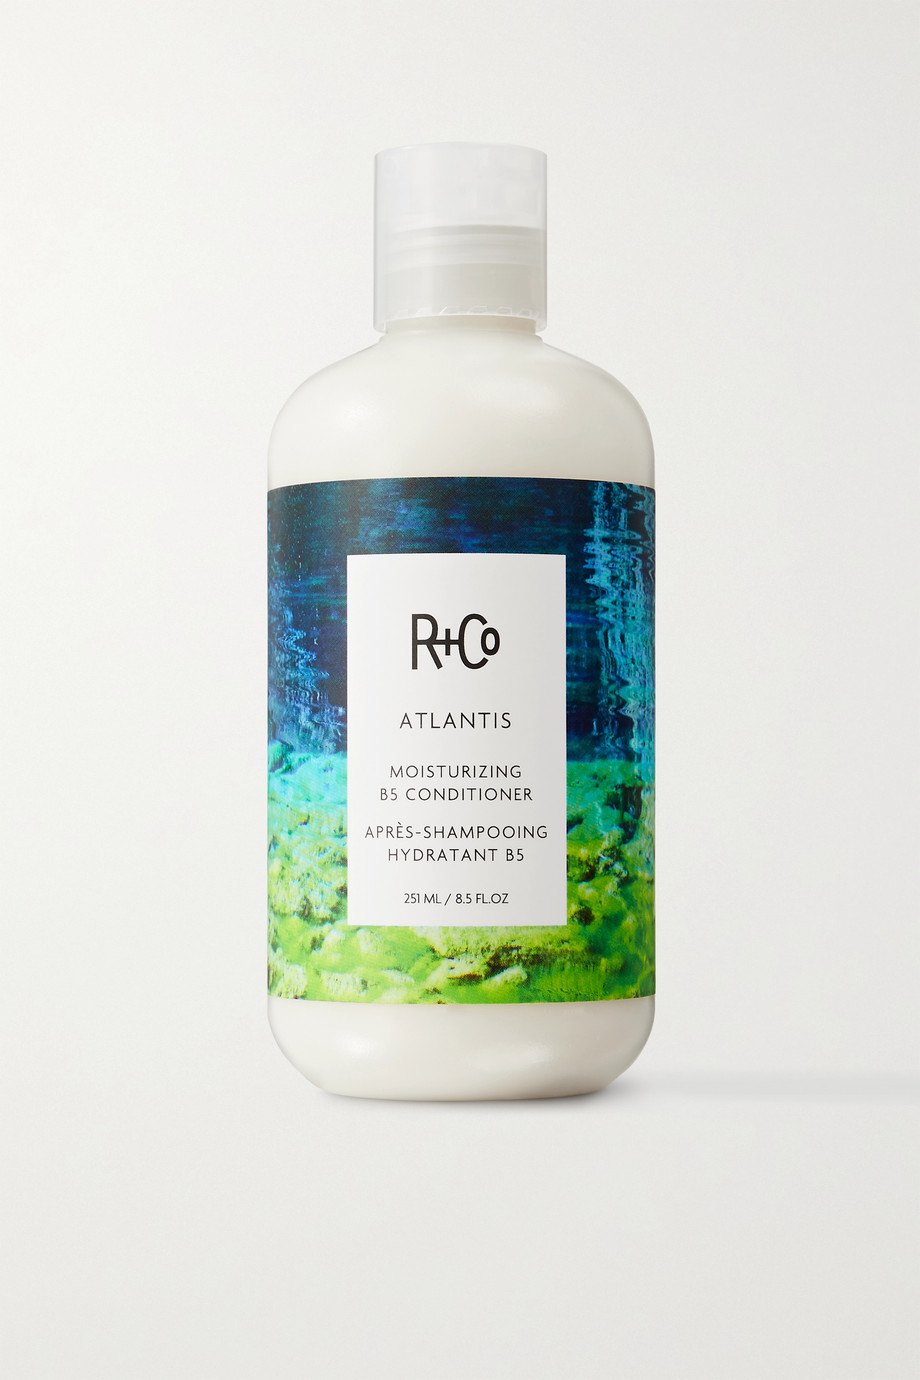 R+CO Atlantis Moisturizing Conditioner, 241ml